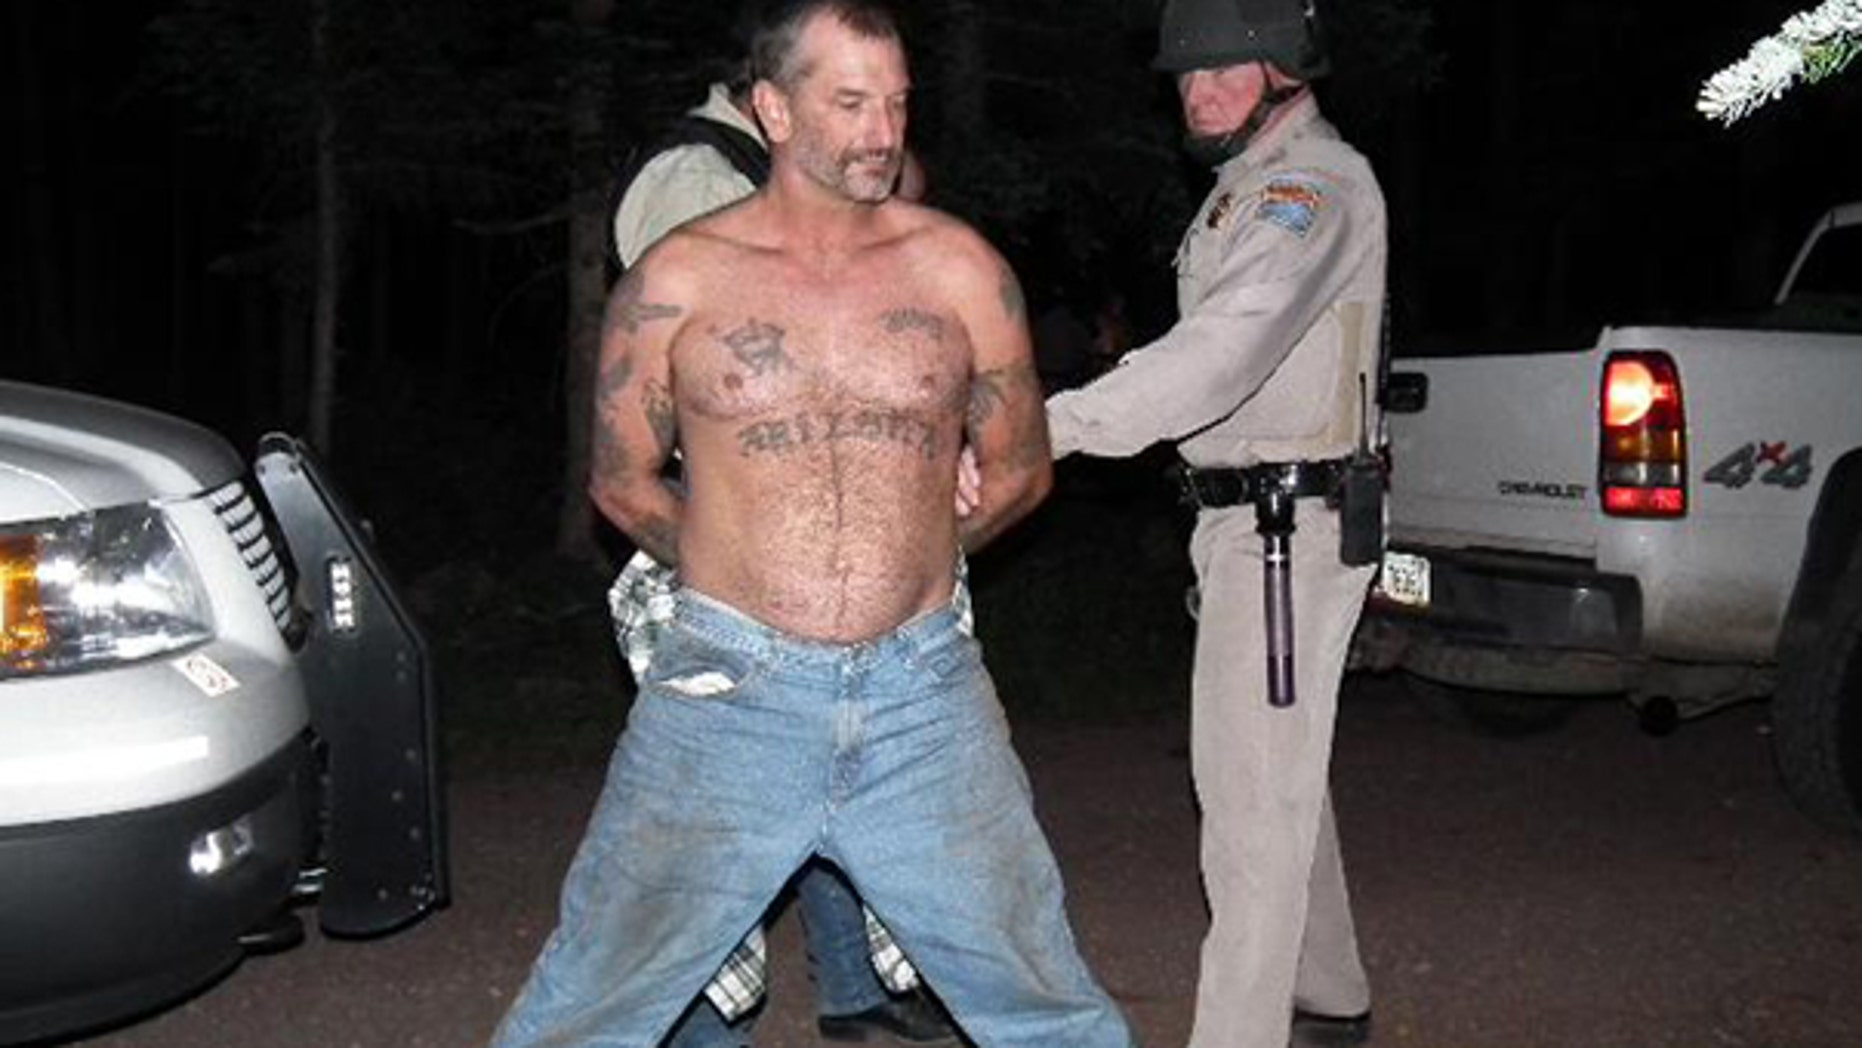 Aug. 19: In this photo provided by the U.S. Marshals Service, fugitive John McCluskey is shown being taken into custody by U.S. Marshals in eastern Arizona. McCluskey and his fiancee Casslyn Welch had been on the run since July 30.